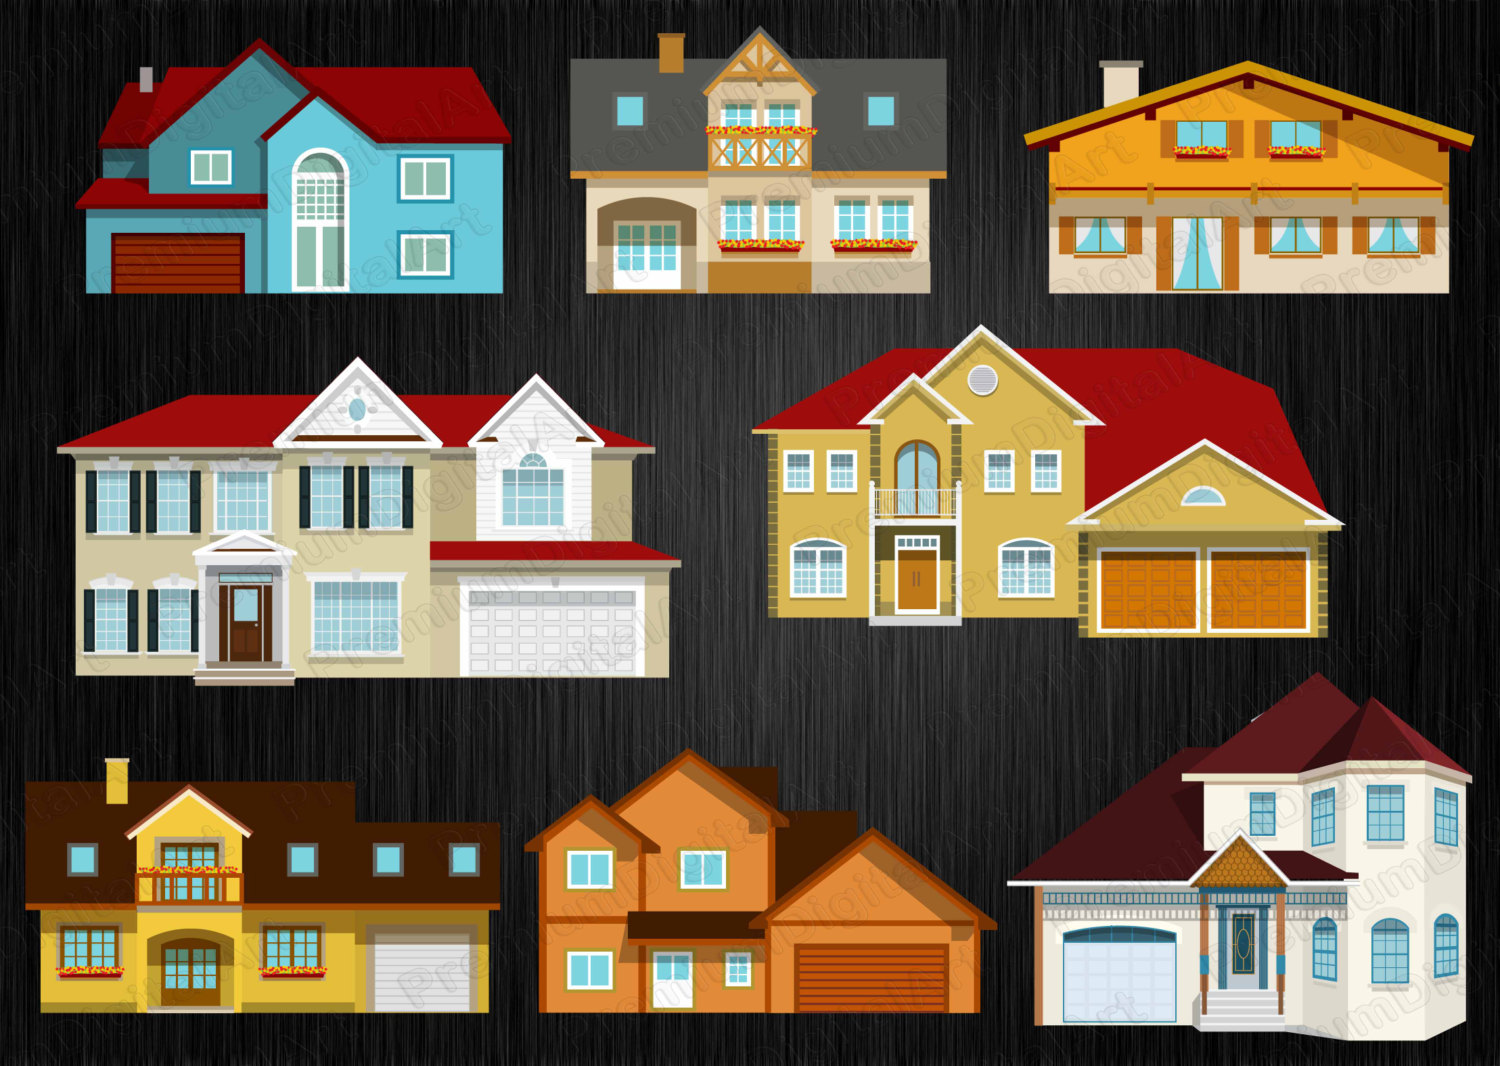 Villa clipart hause This house country 8 a